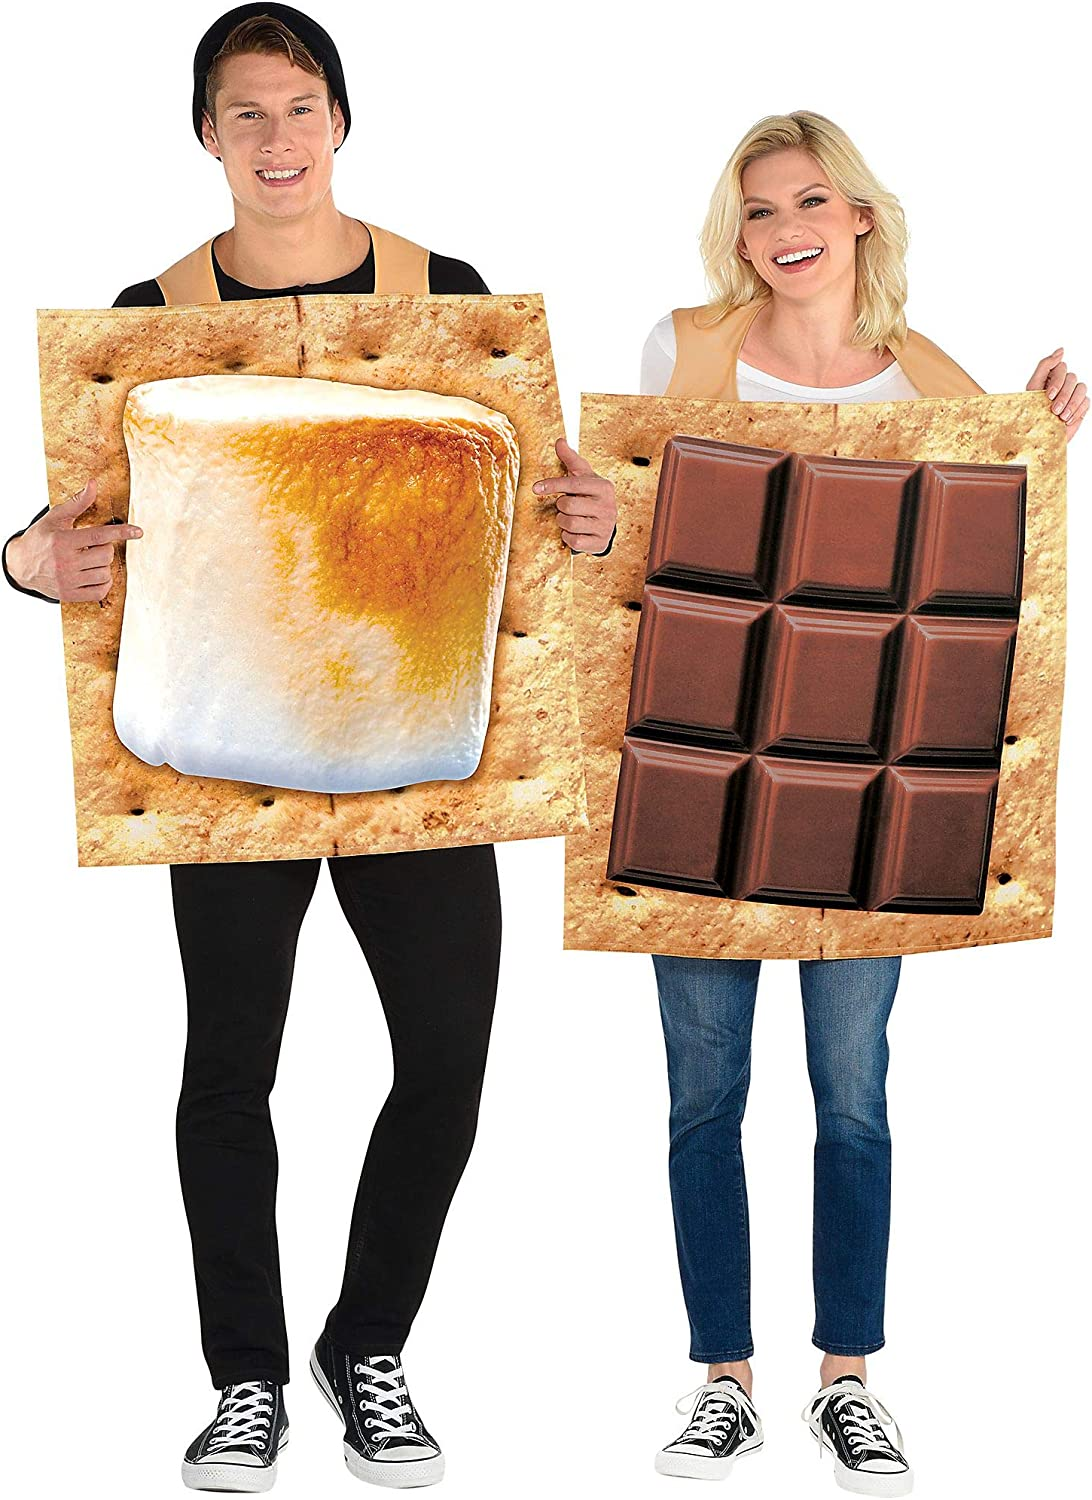 Party City S'Mores Snack Couple Halloween Costume, Adults Standard Size, Chocolate and Marshmallow Graham Cracker Tunics